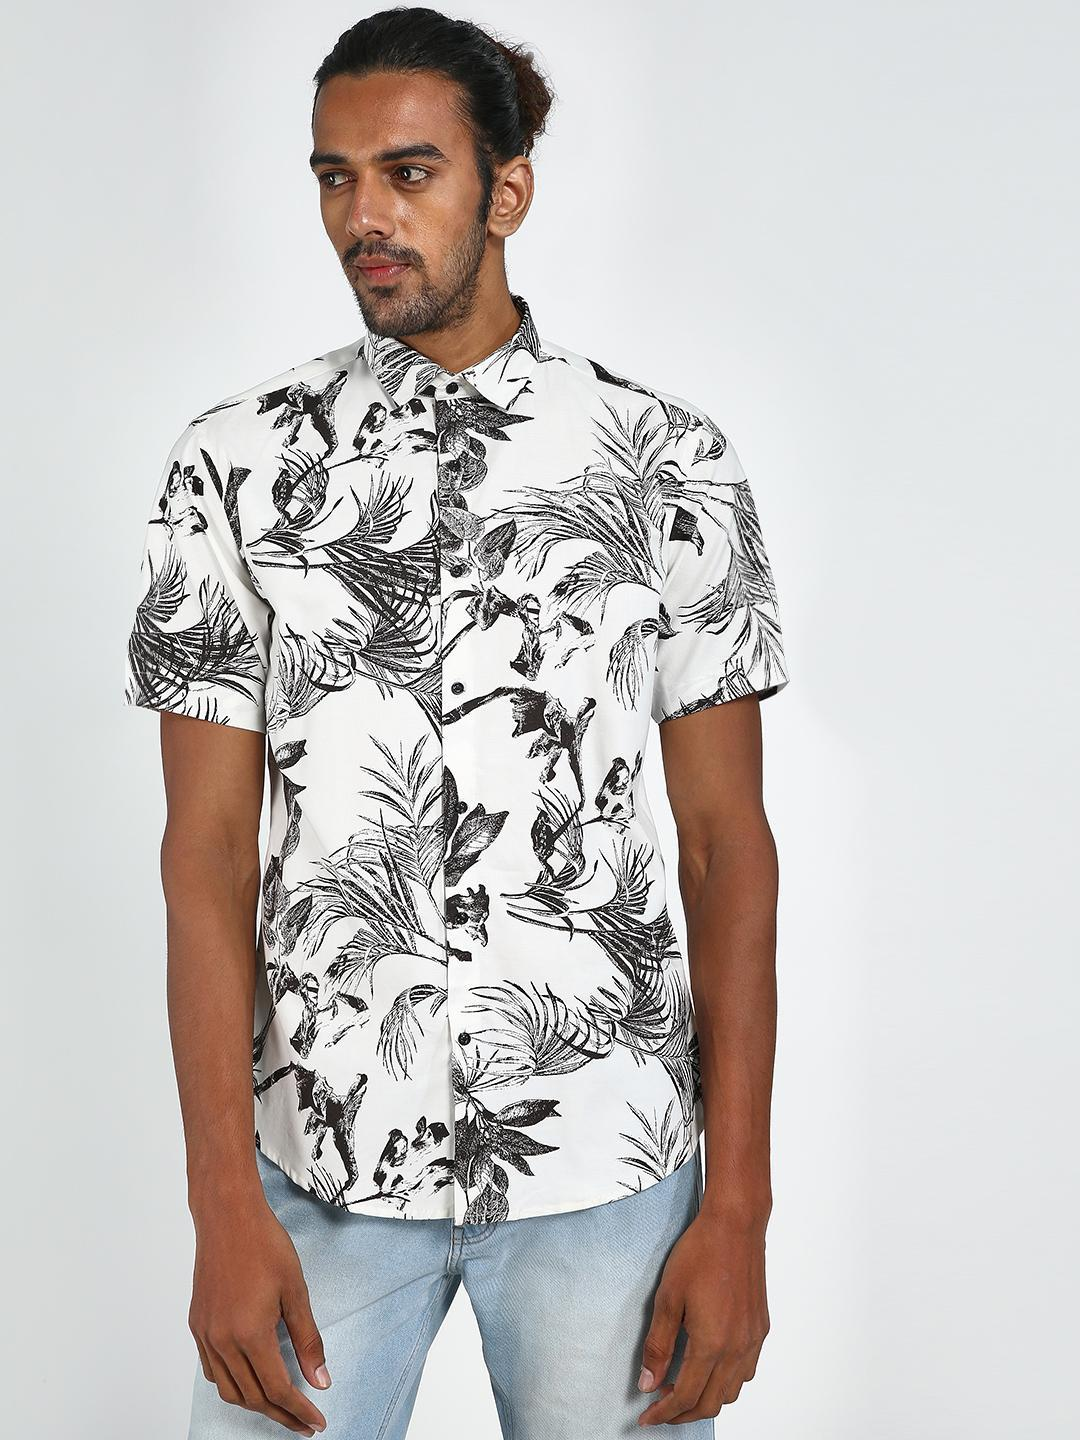 Green Hill Black/White All Over Printed Men's Casual Shirt 1